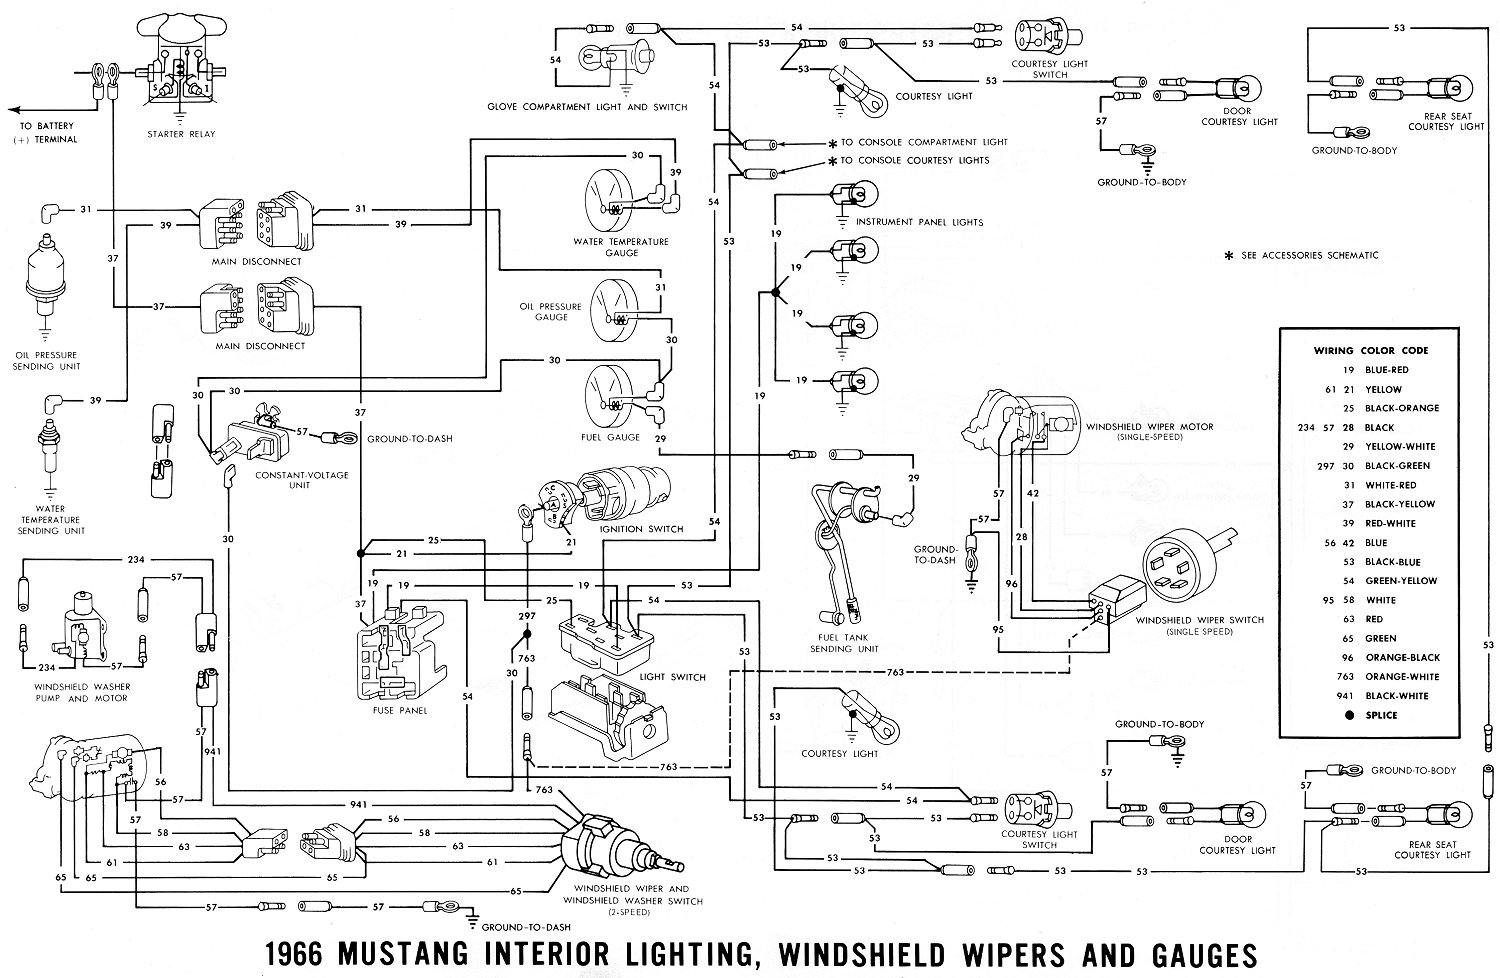 wiring a lamp plug with Ment 15329 on Schematics h additionally ment 15329 further Ck63 Field Control Wiring Diagram moreover ShowAssembly moreover File Electrical Symbols IEC.